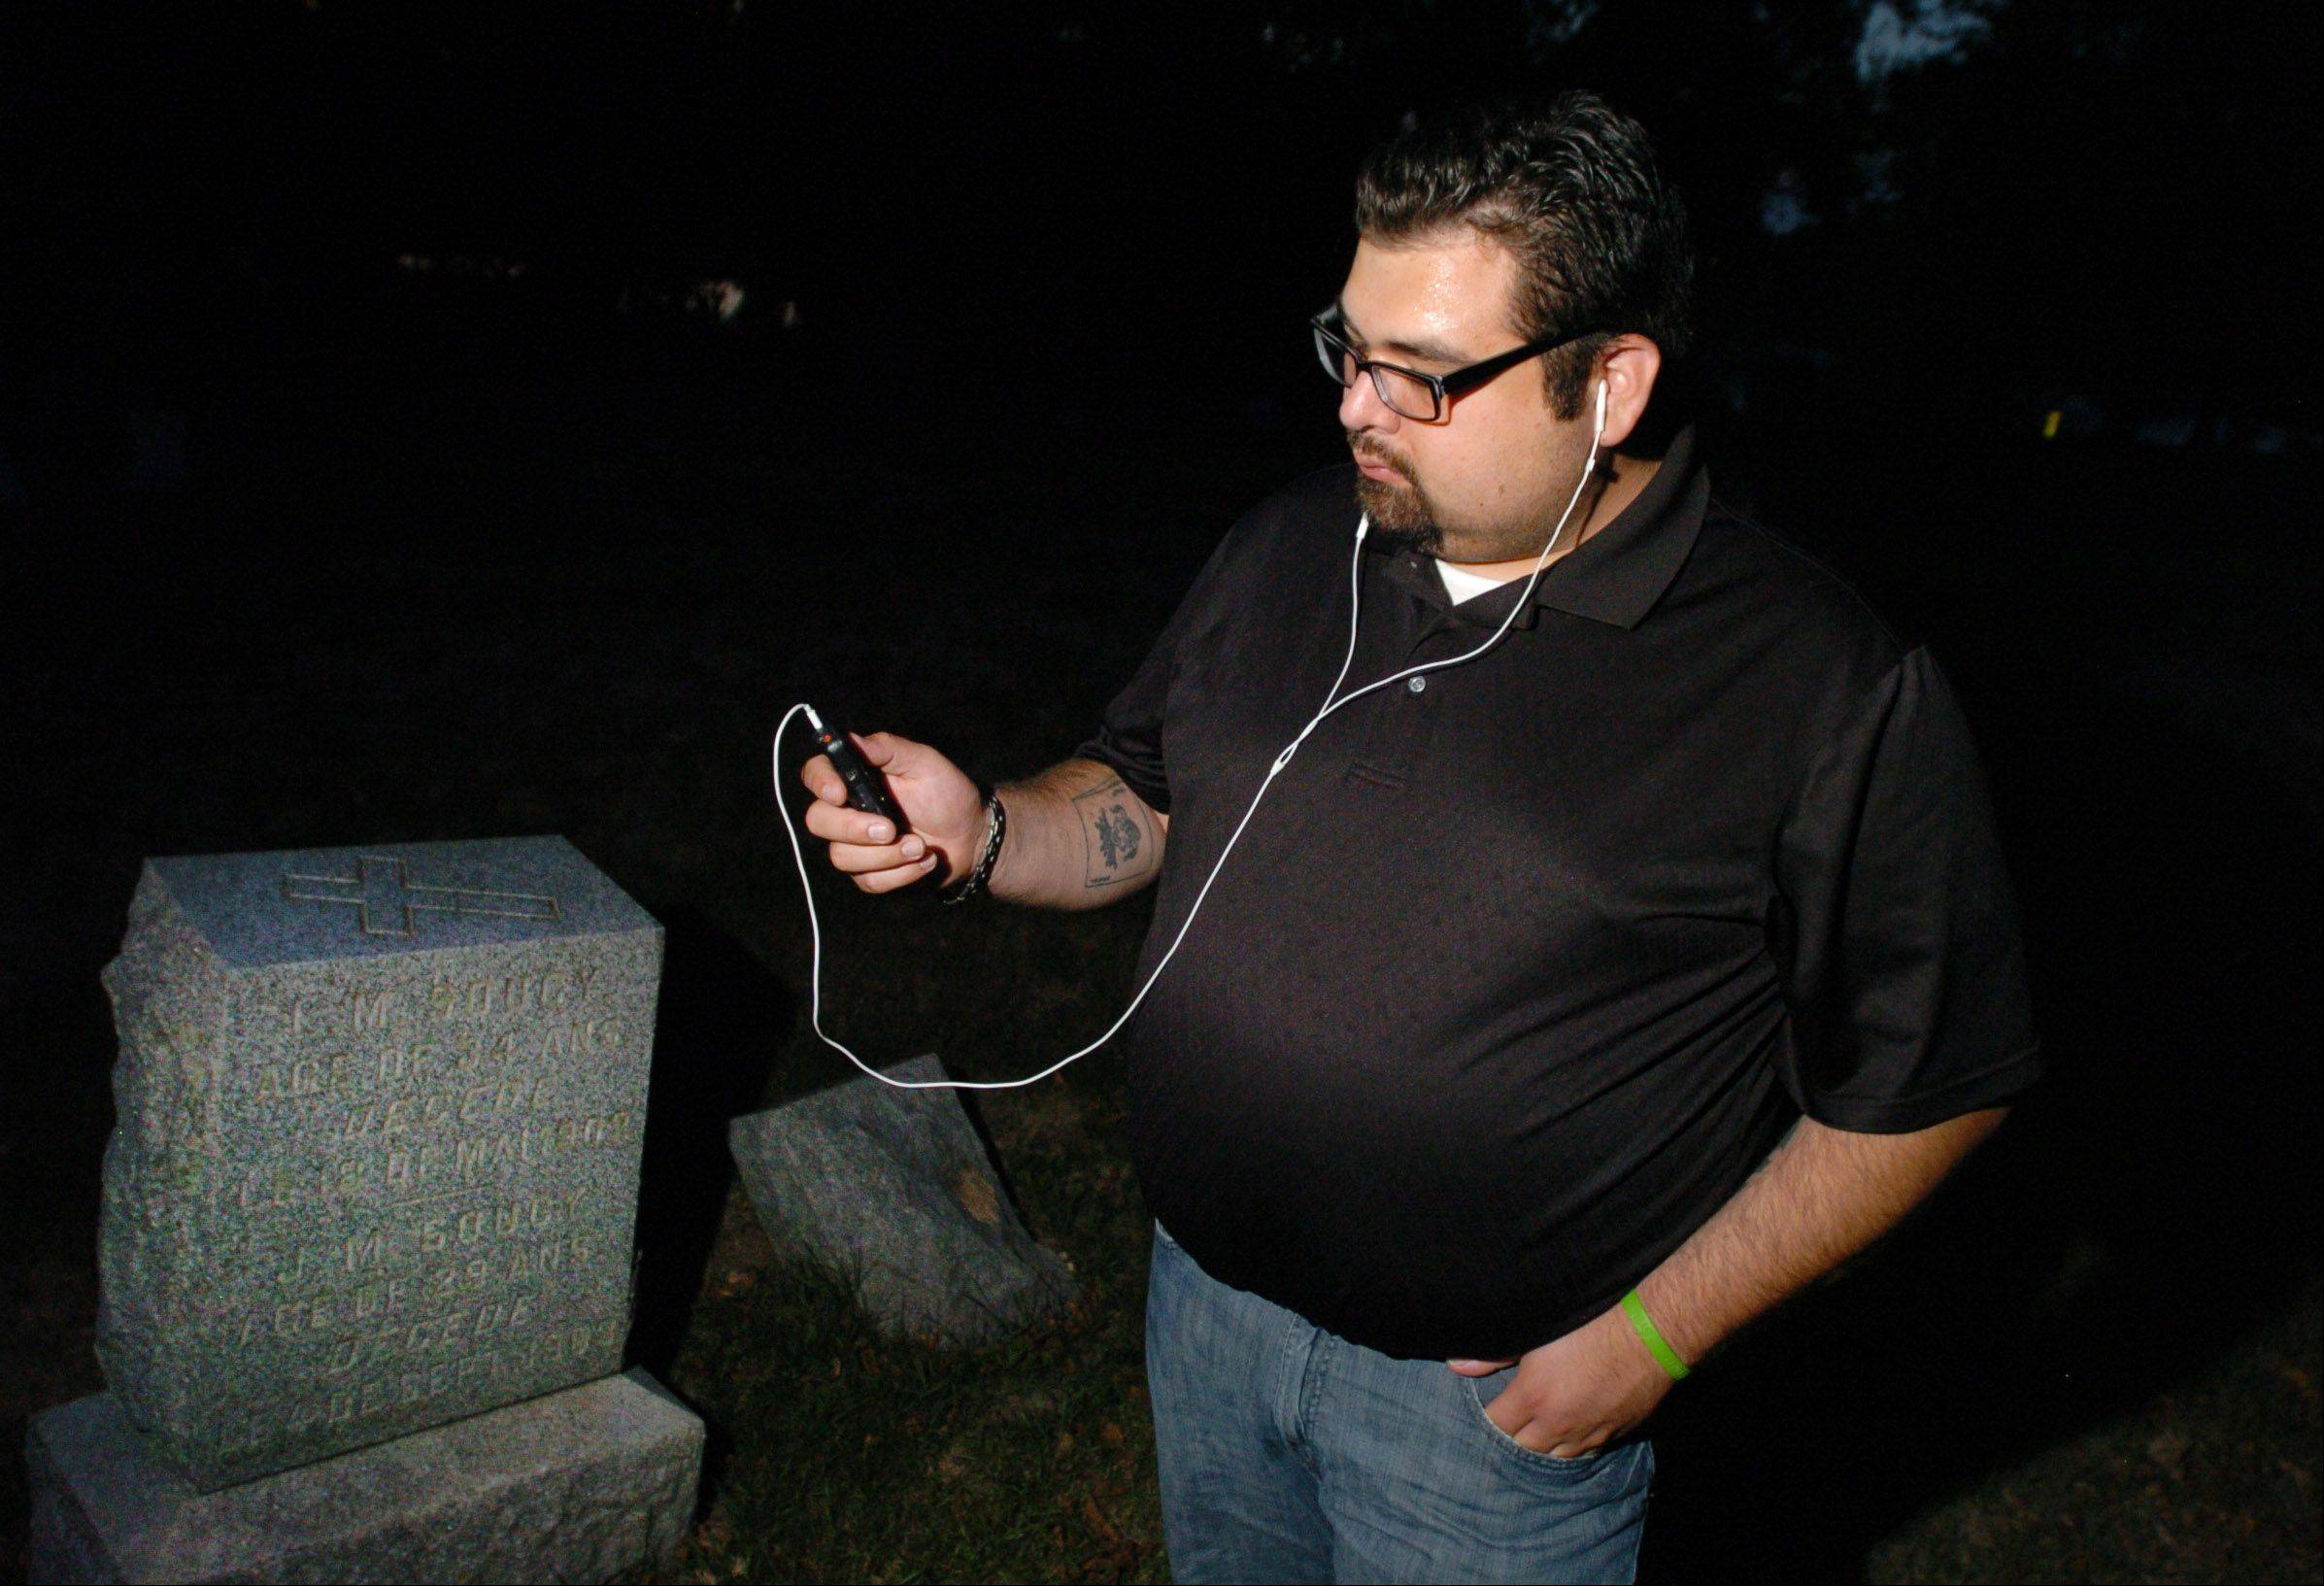 Matthew Herran listens closely to his digital audio recorder after conducting an EVP session at a Montgomery Cemetery. Herran will often spend three or more hours at a location on his hunts.